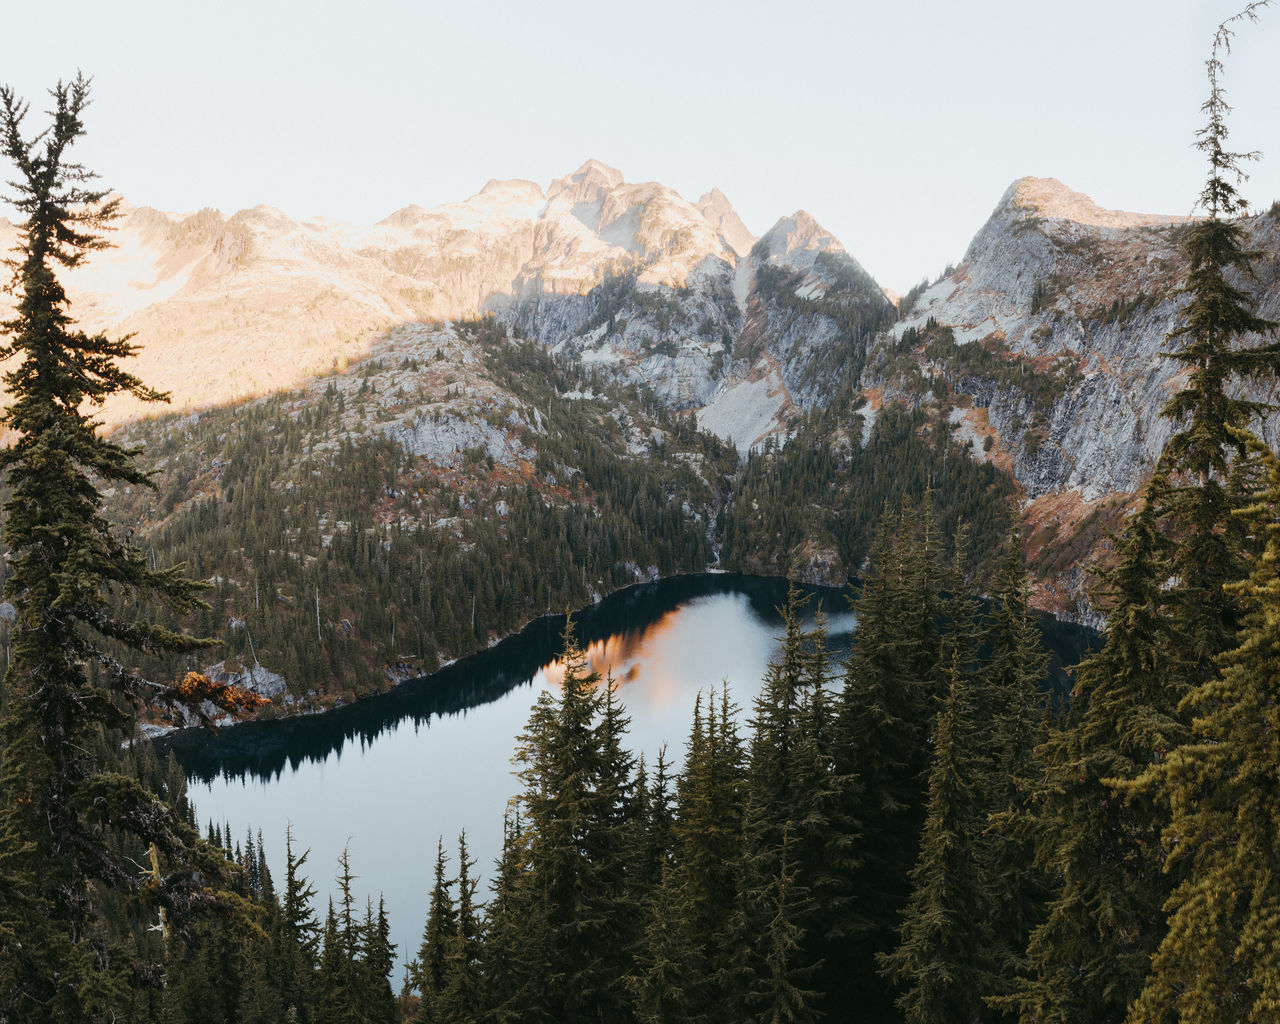 Sunrise hike in washington state Adventure Beauty In Nature Clear Sky Day Forest Lake Landscape Mountain Mountain Range Nature No People Outdoors PNW Scenics Sky Sunrise Tranquil Scene Tranquility Washington State Water